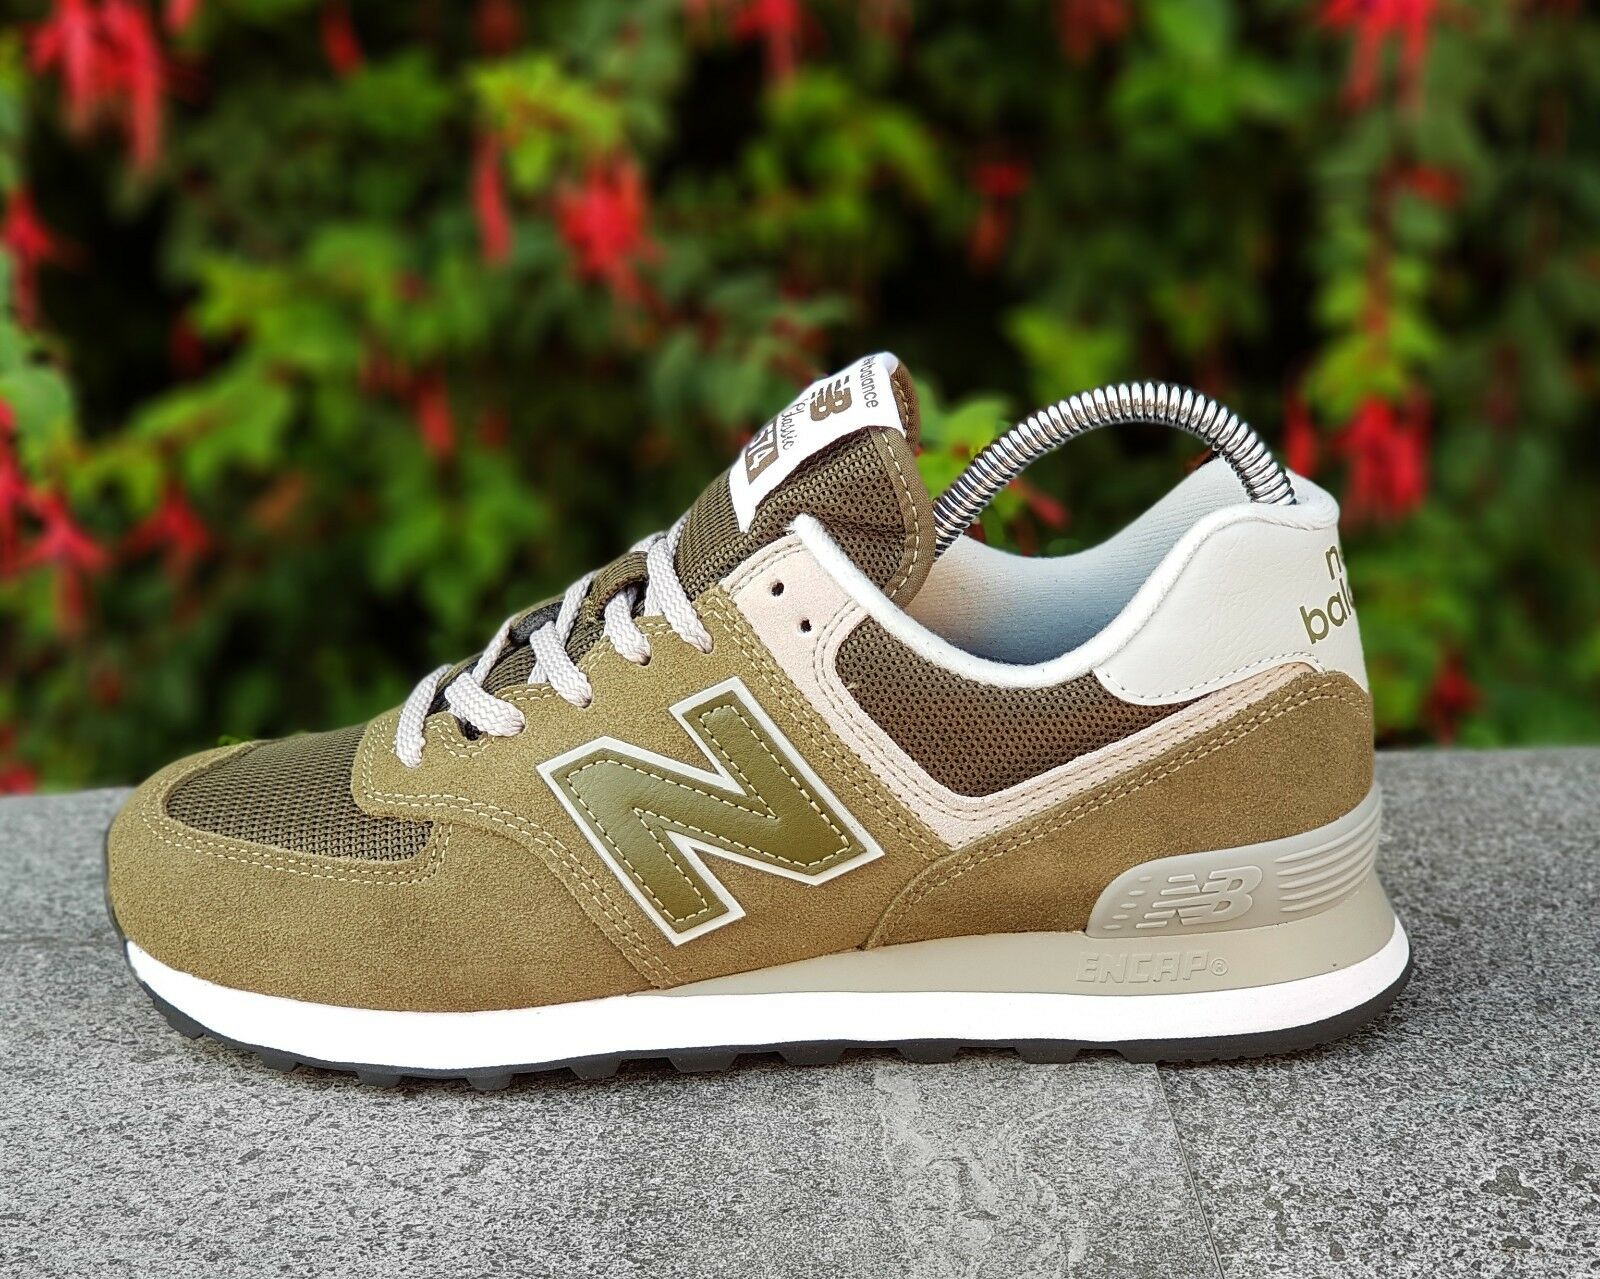 BNWB & AUTHENTIC New Balance ® ML574 EGO Oliva in Pelle Scamosciata Stile Retrò Sneaker